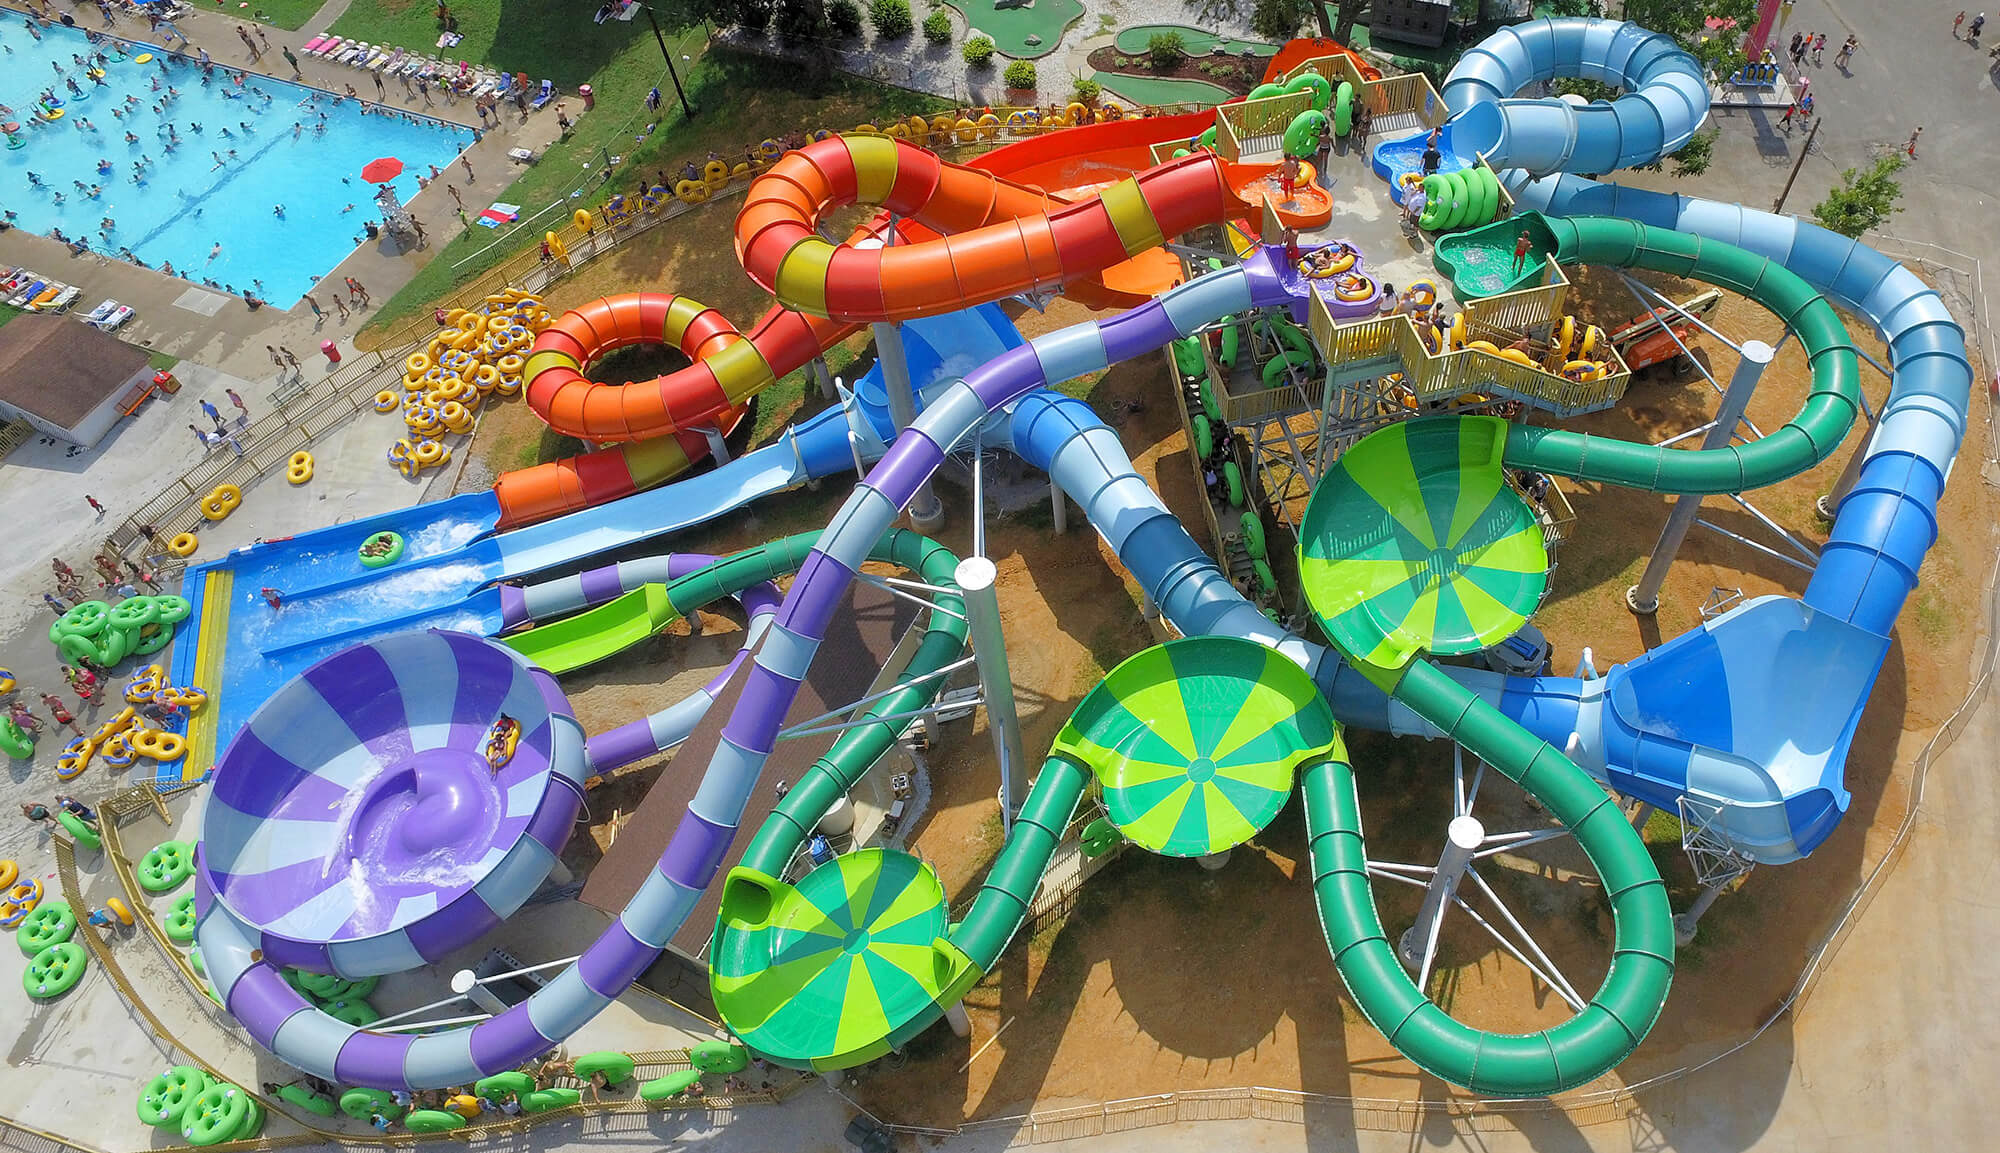 Splash Lagoon Slides | Beech Bend Amusement Park - Bowling Green, KY